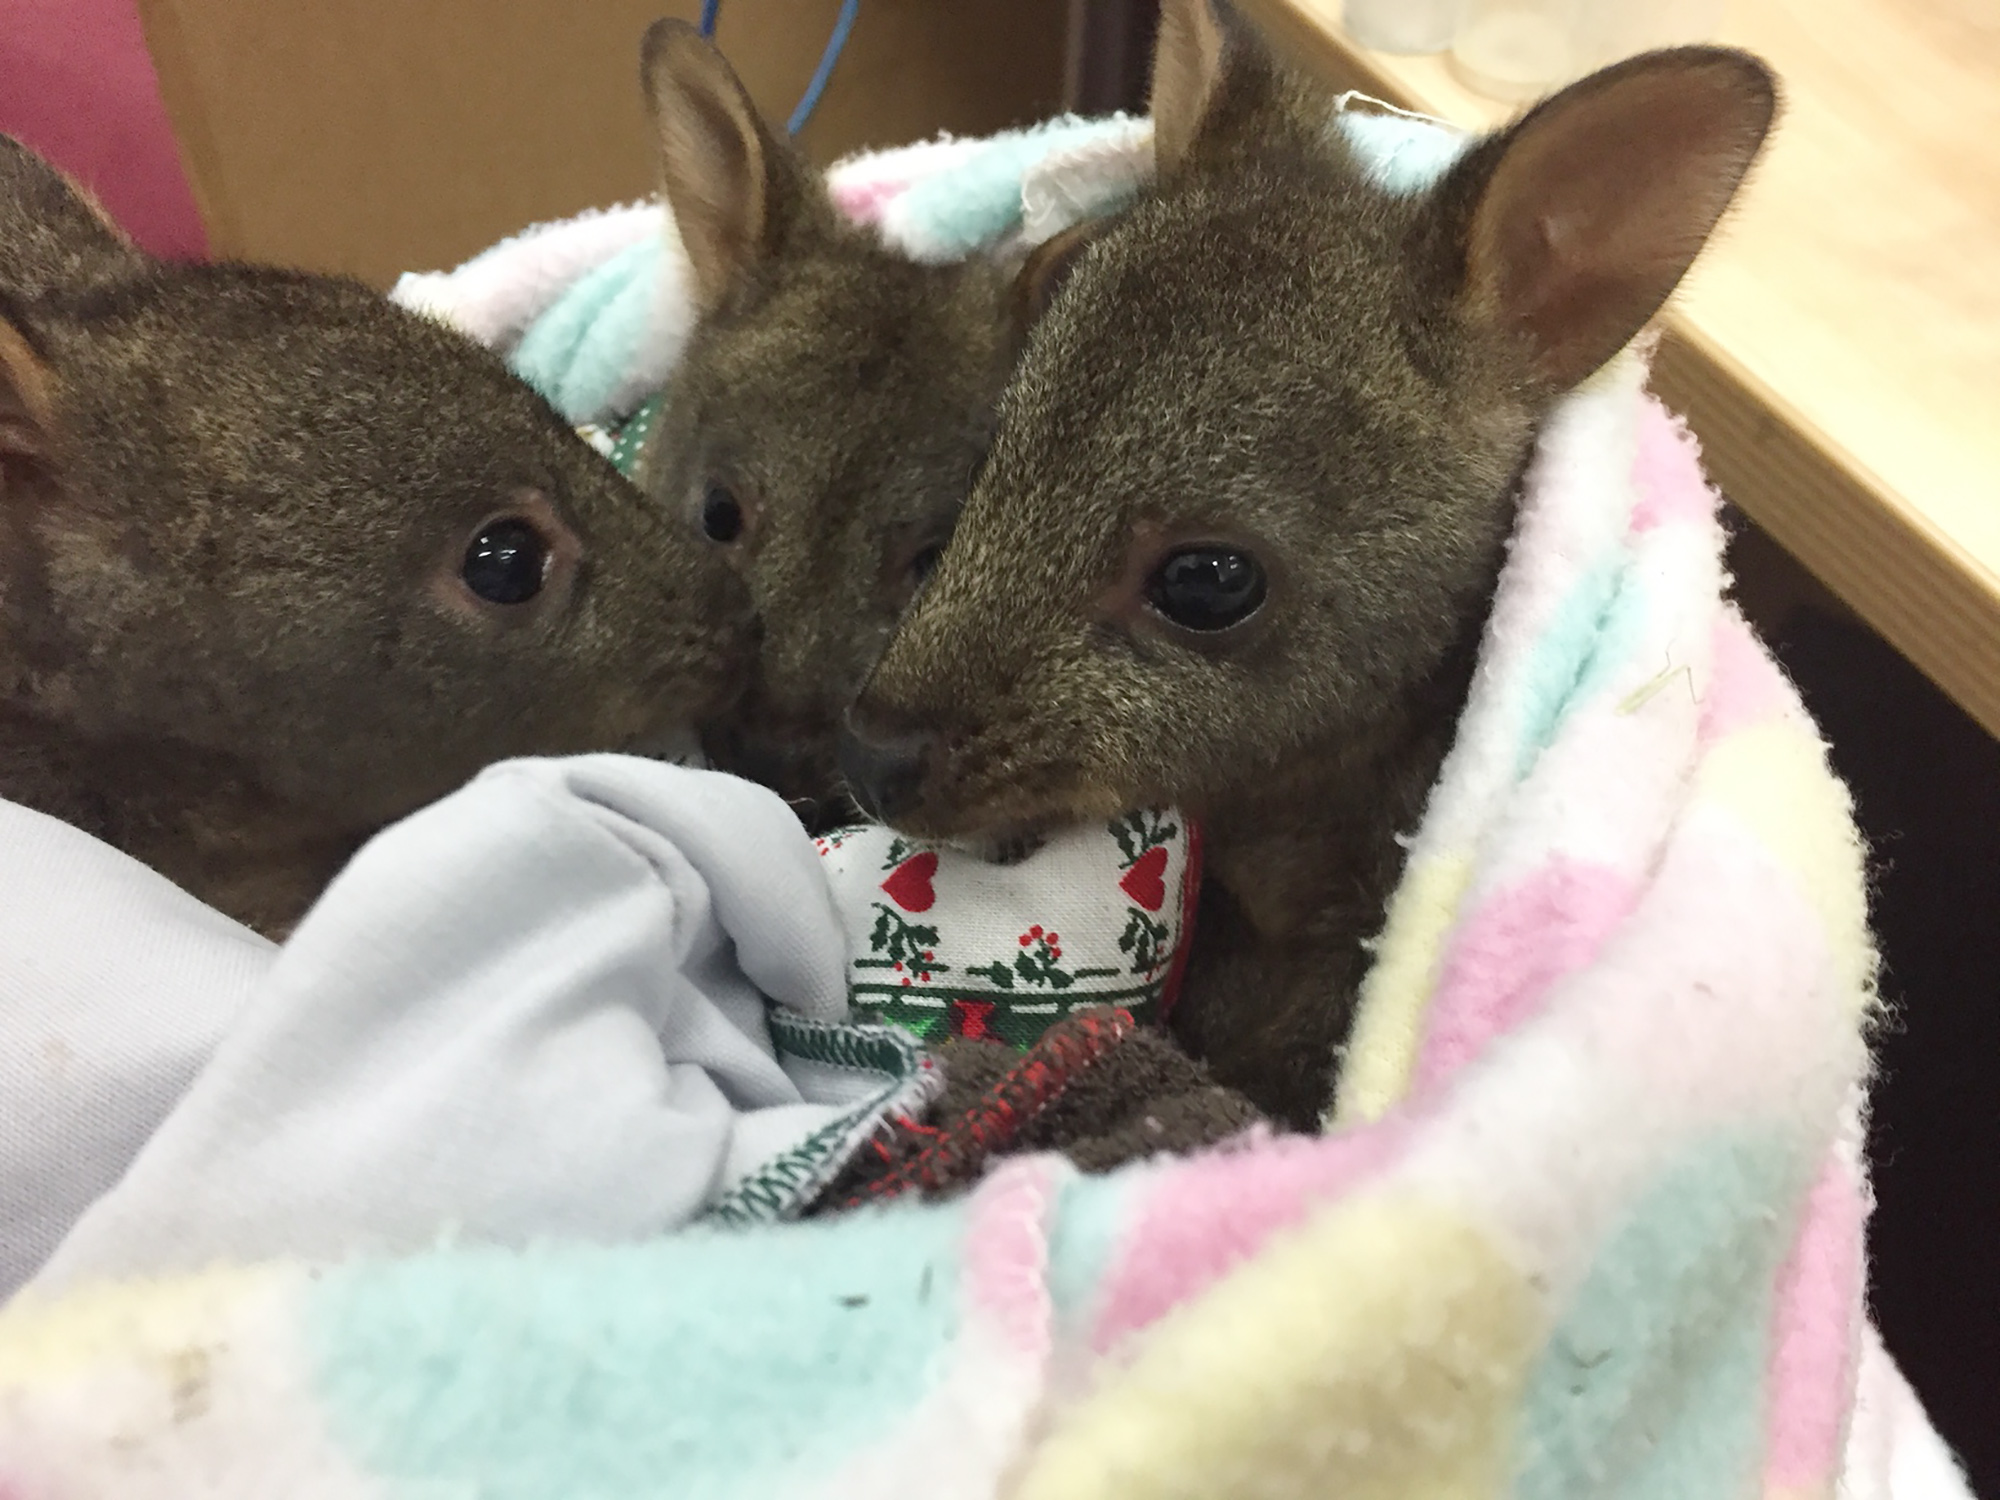 3 orphaned pademelons wrapped in a blanket